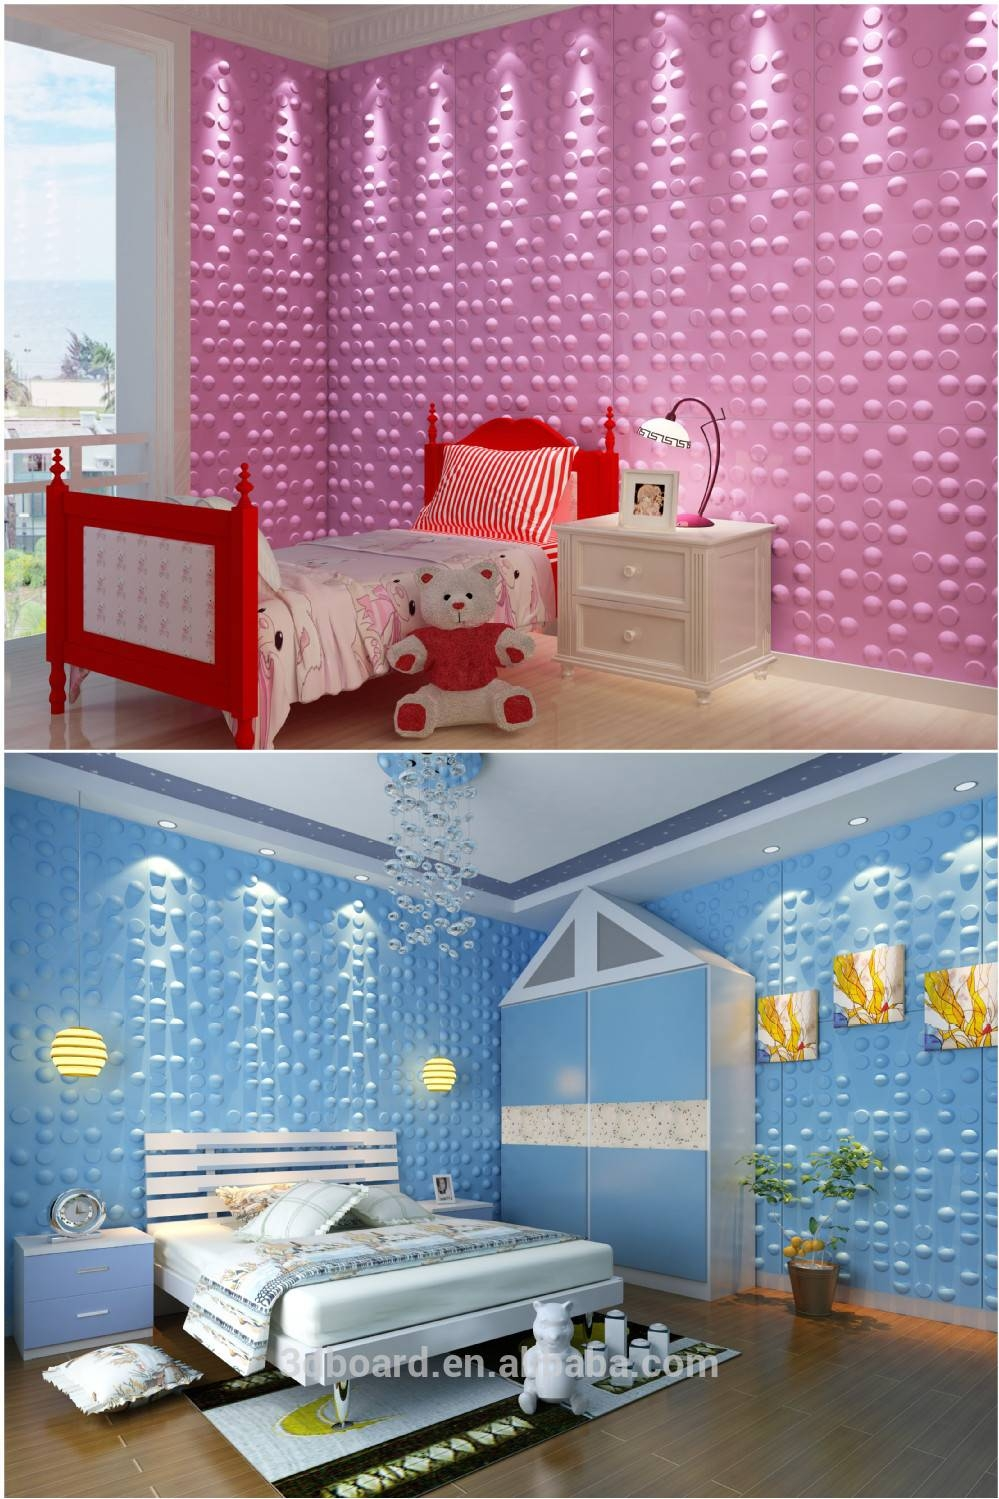 Modern Wall Art Decor Interior 3D Effect Wall Panels For Home Pertaining To 2018 3D Effect Wall Art (View 14 of 20)